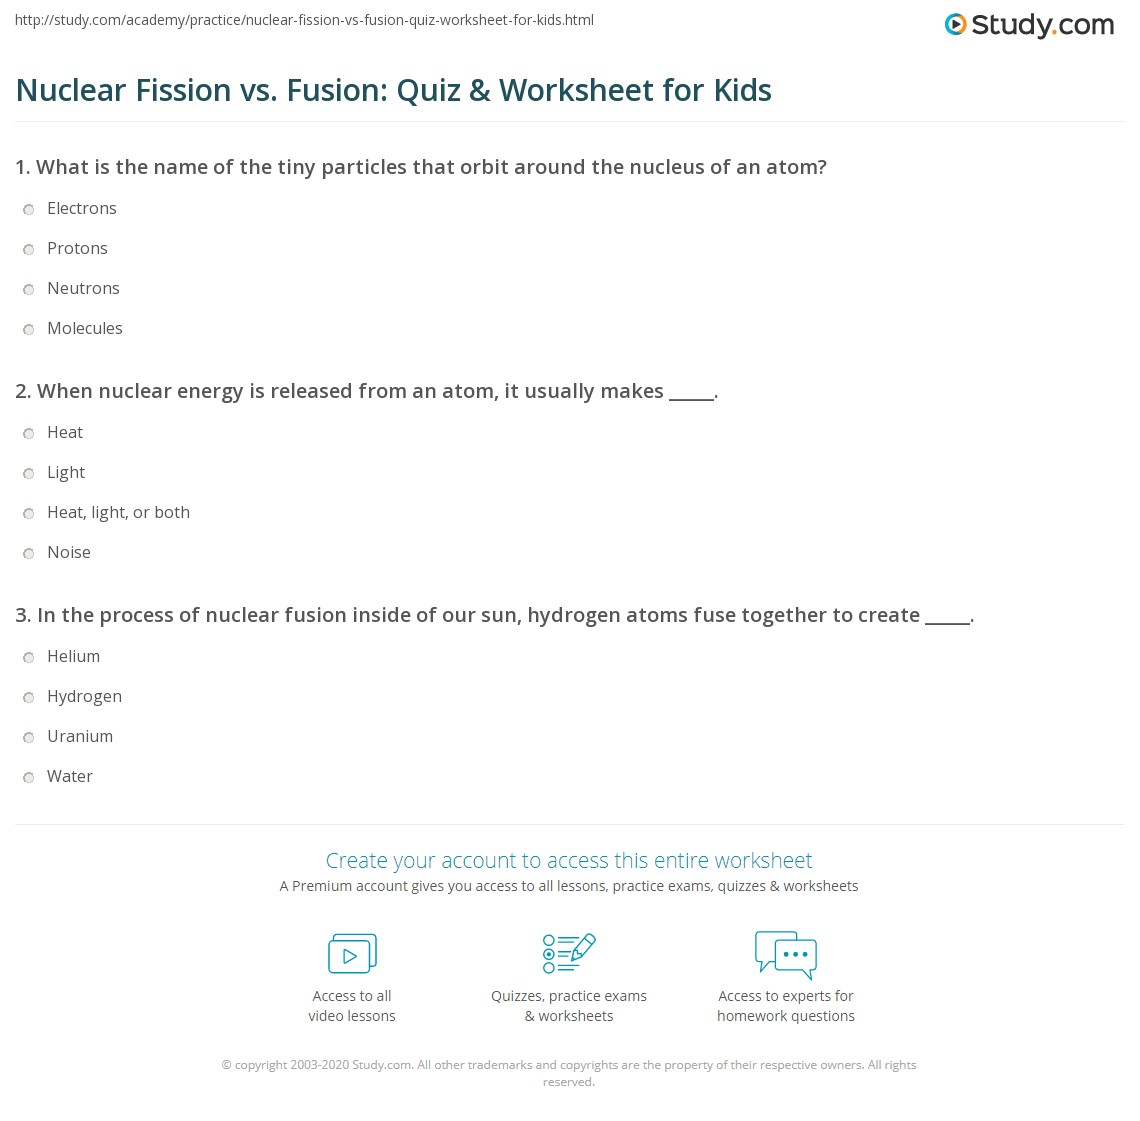 Nuclear Fission Vs Fusion Quiz Amp Worksheet For Kids